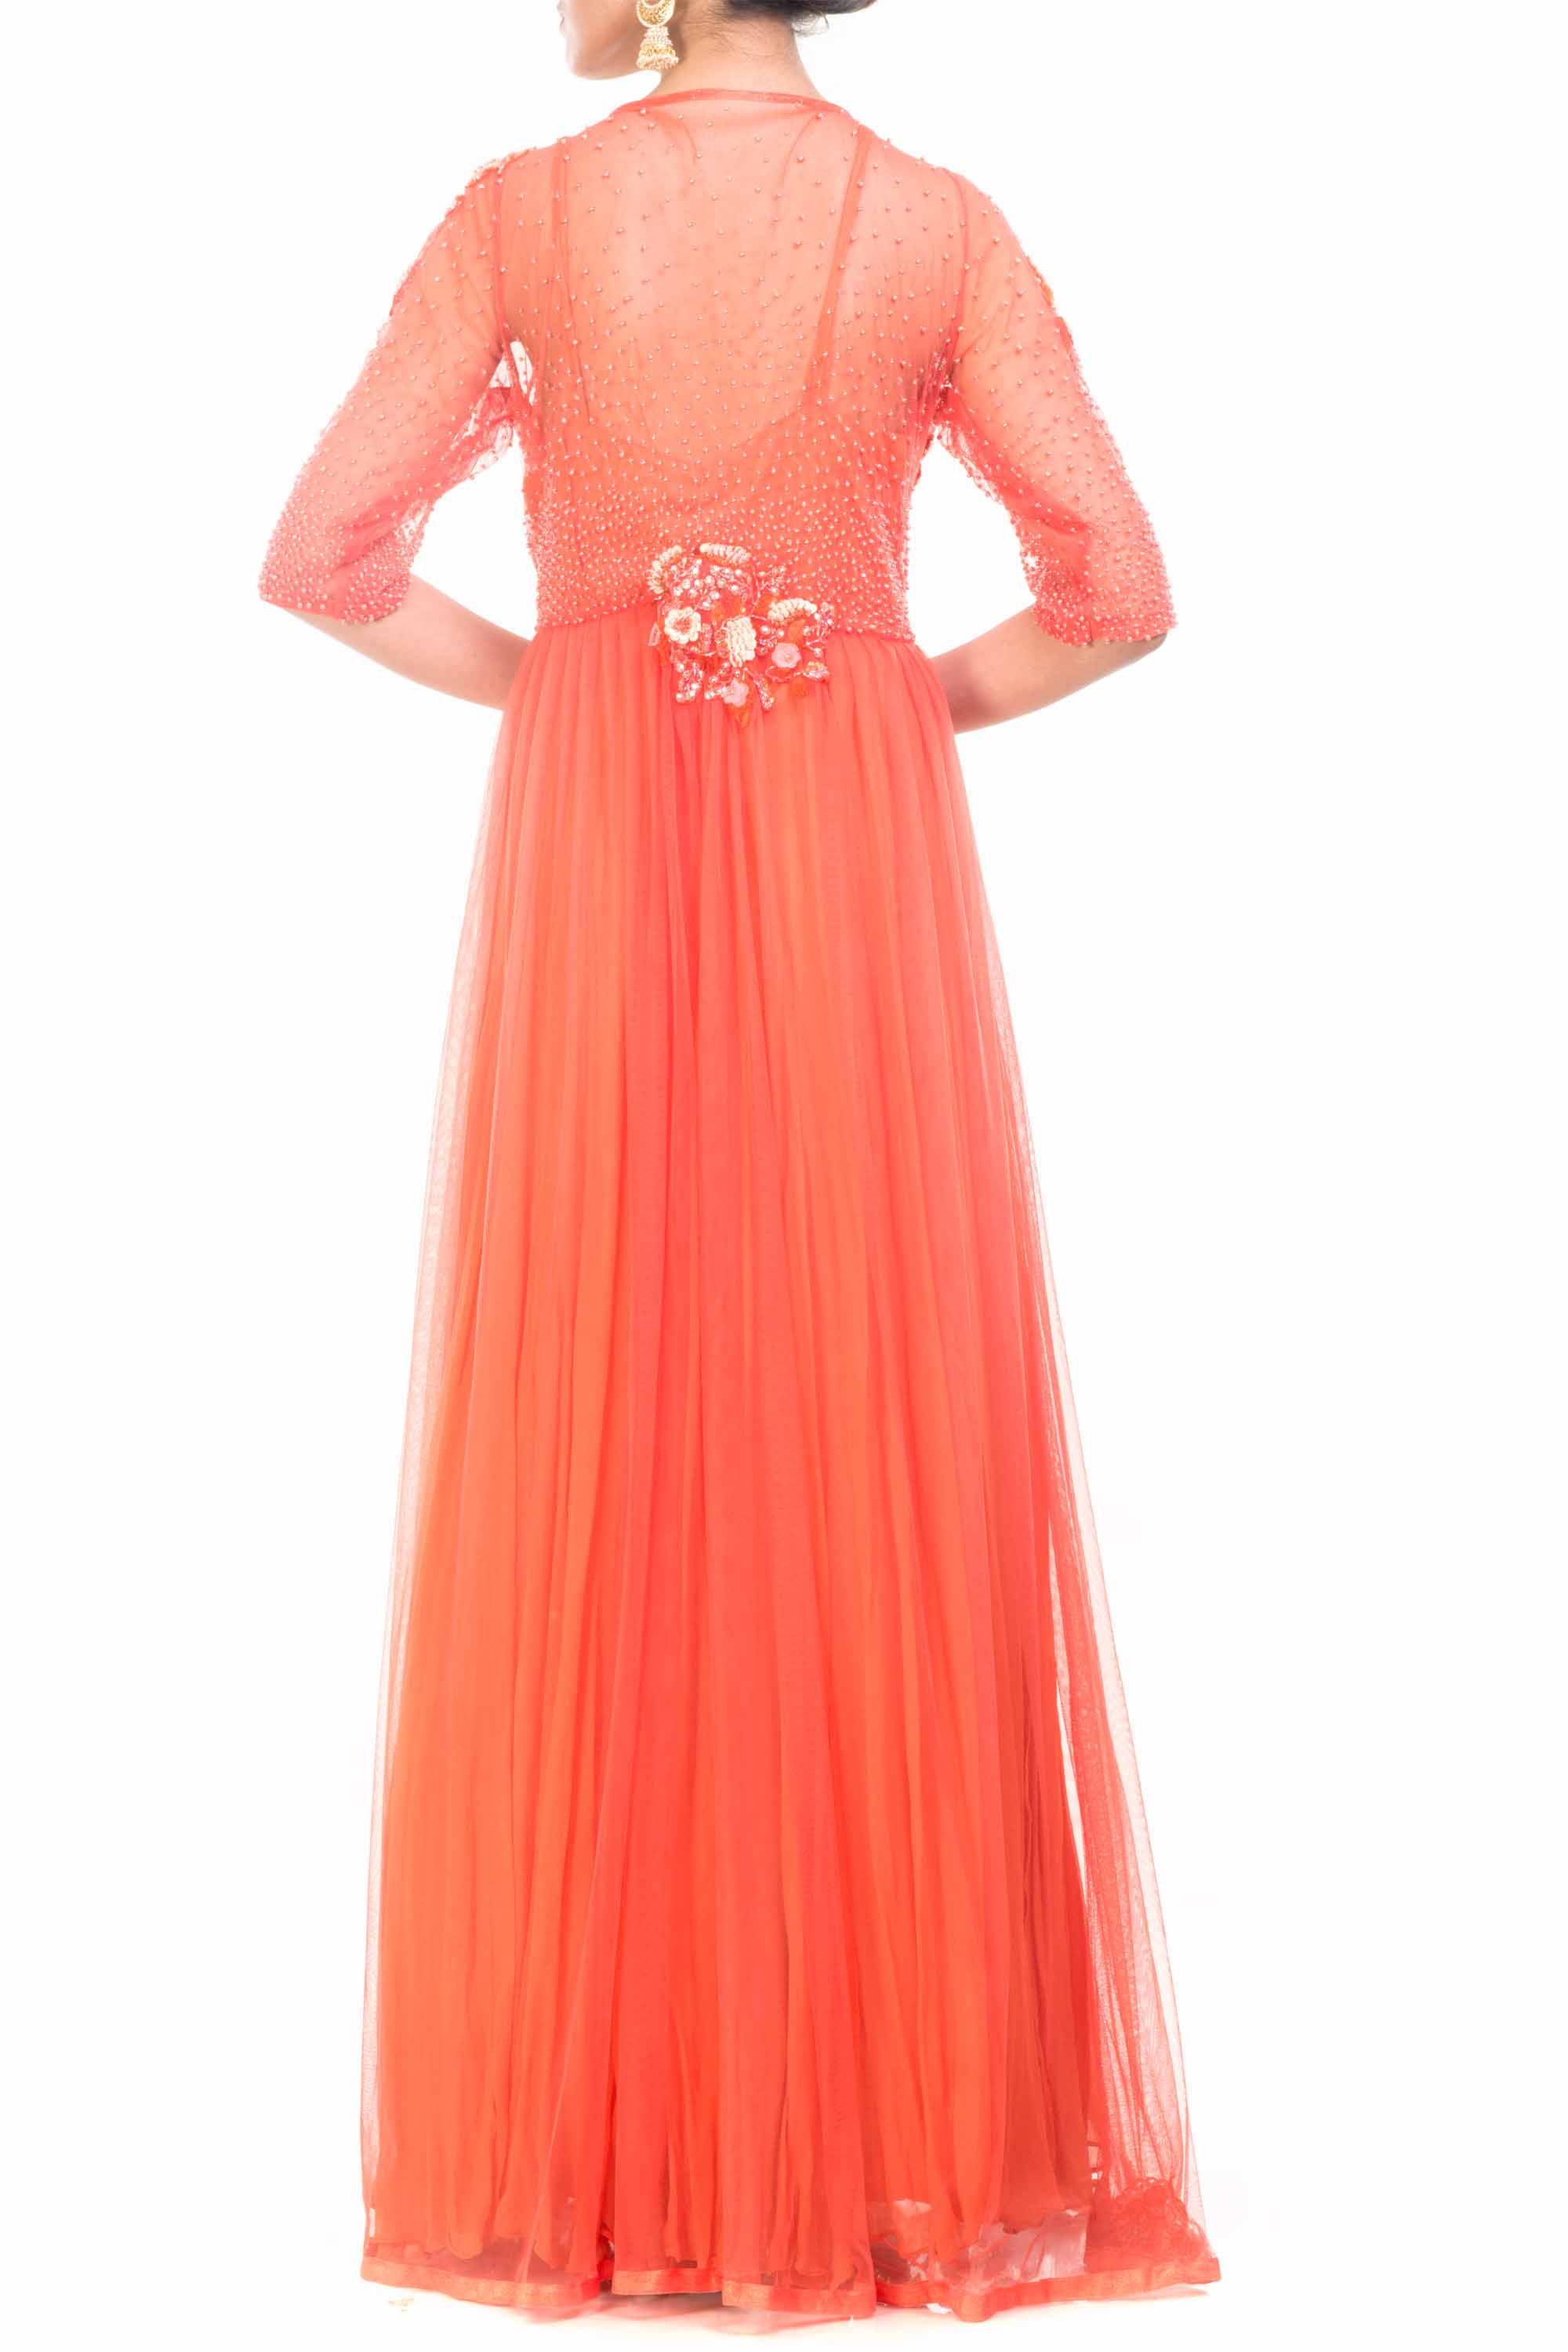 Jacket Style Orange Gown Back